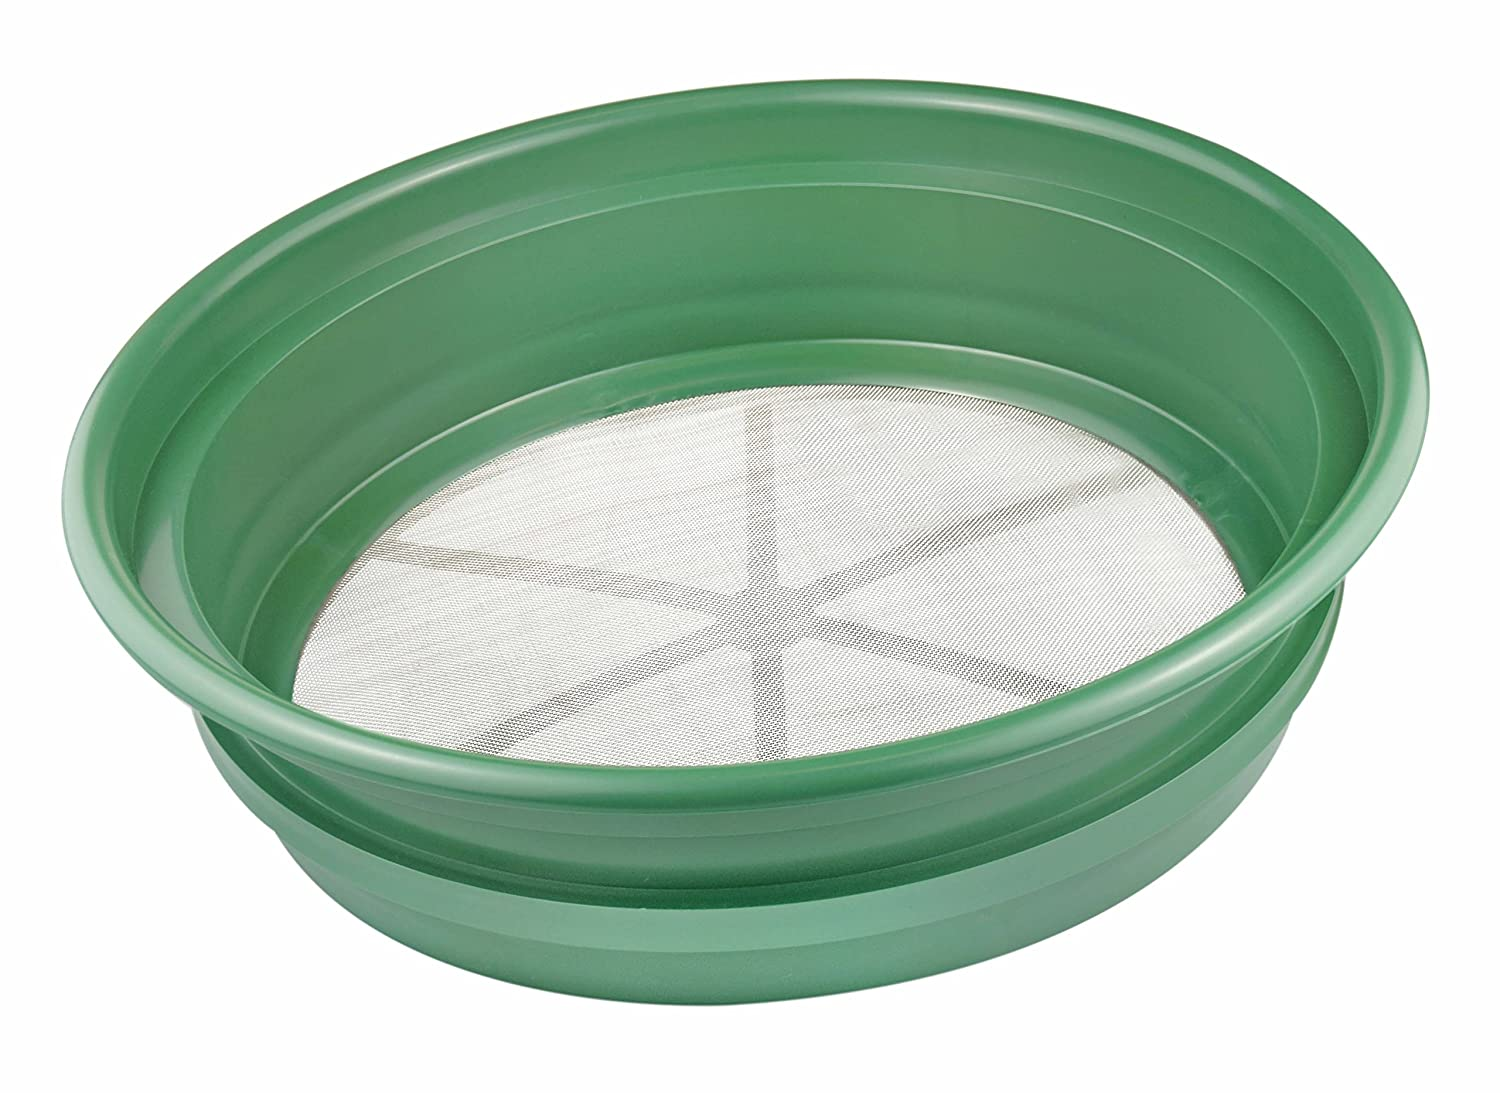 SE GP2-130 Sifting Pan(Mesh Size: 1/30-Inch, Wire Thickness: 0.30mm)